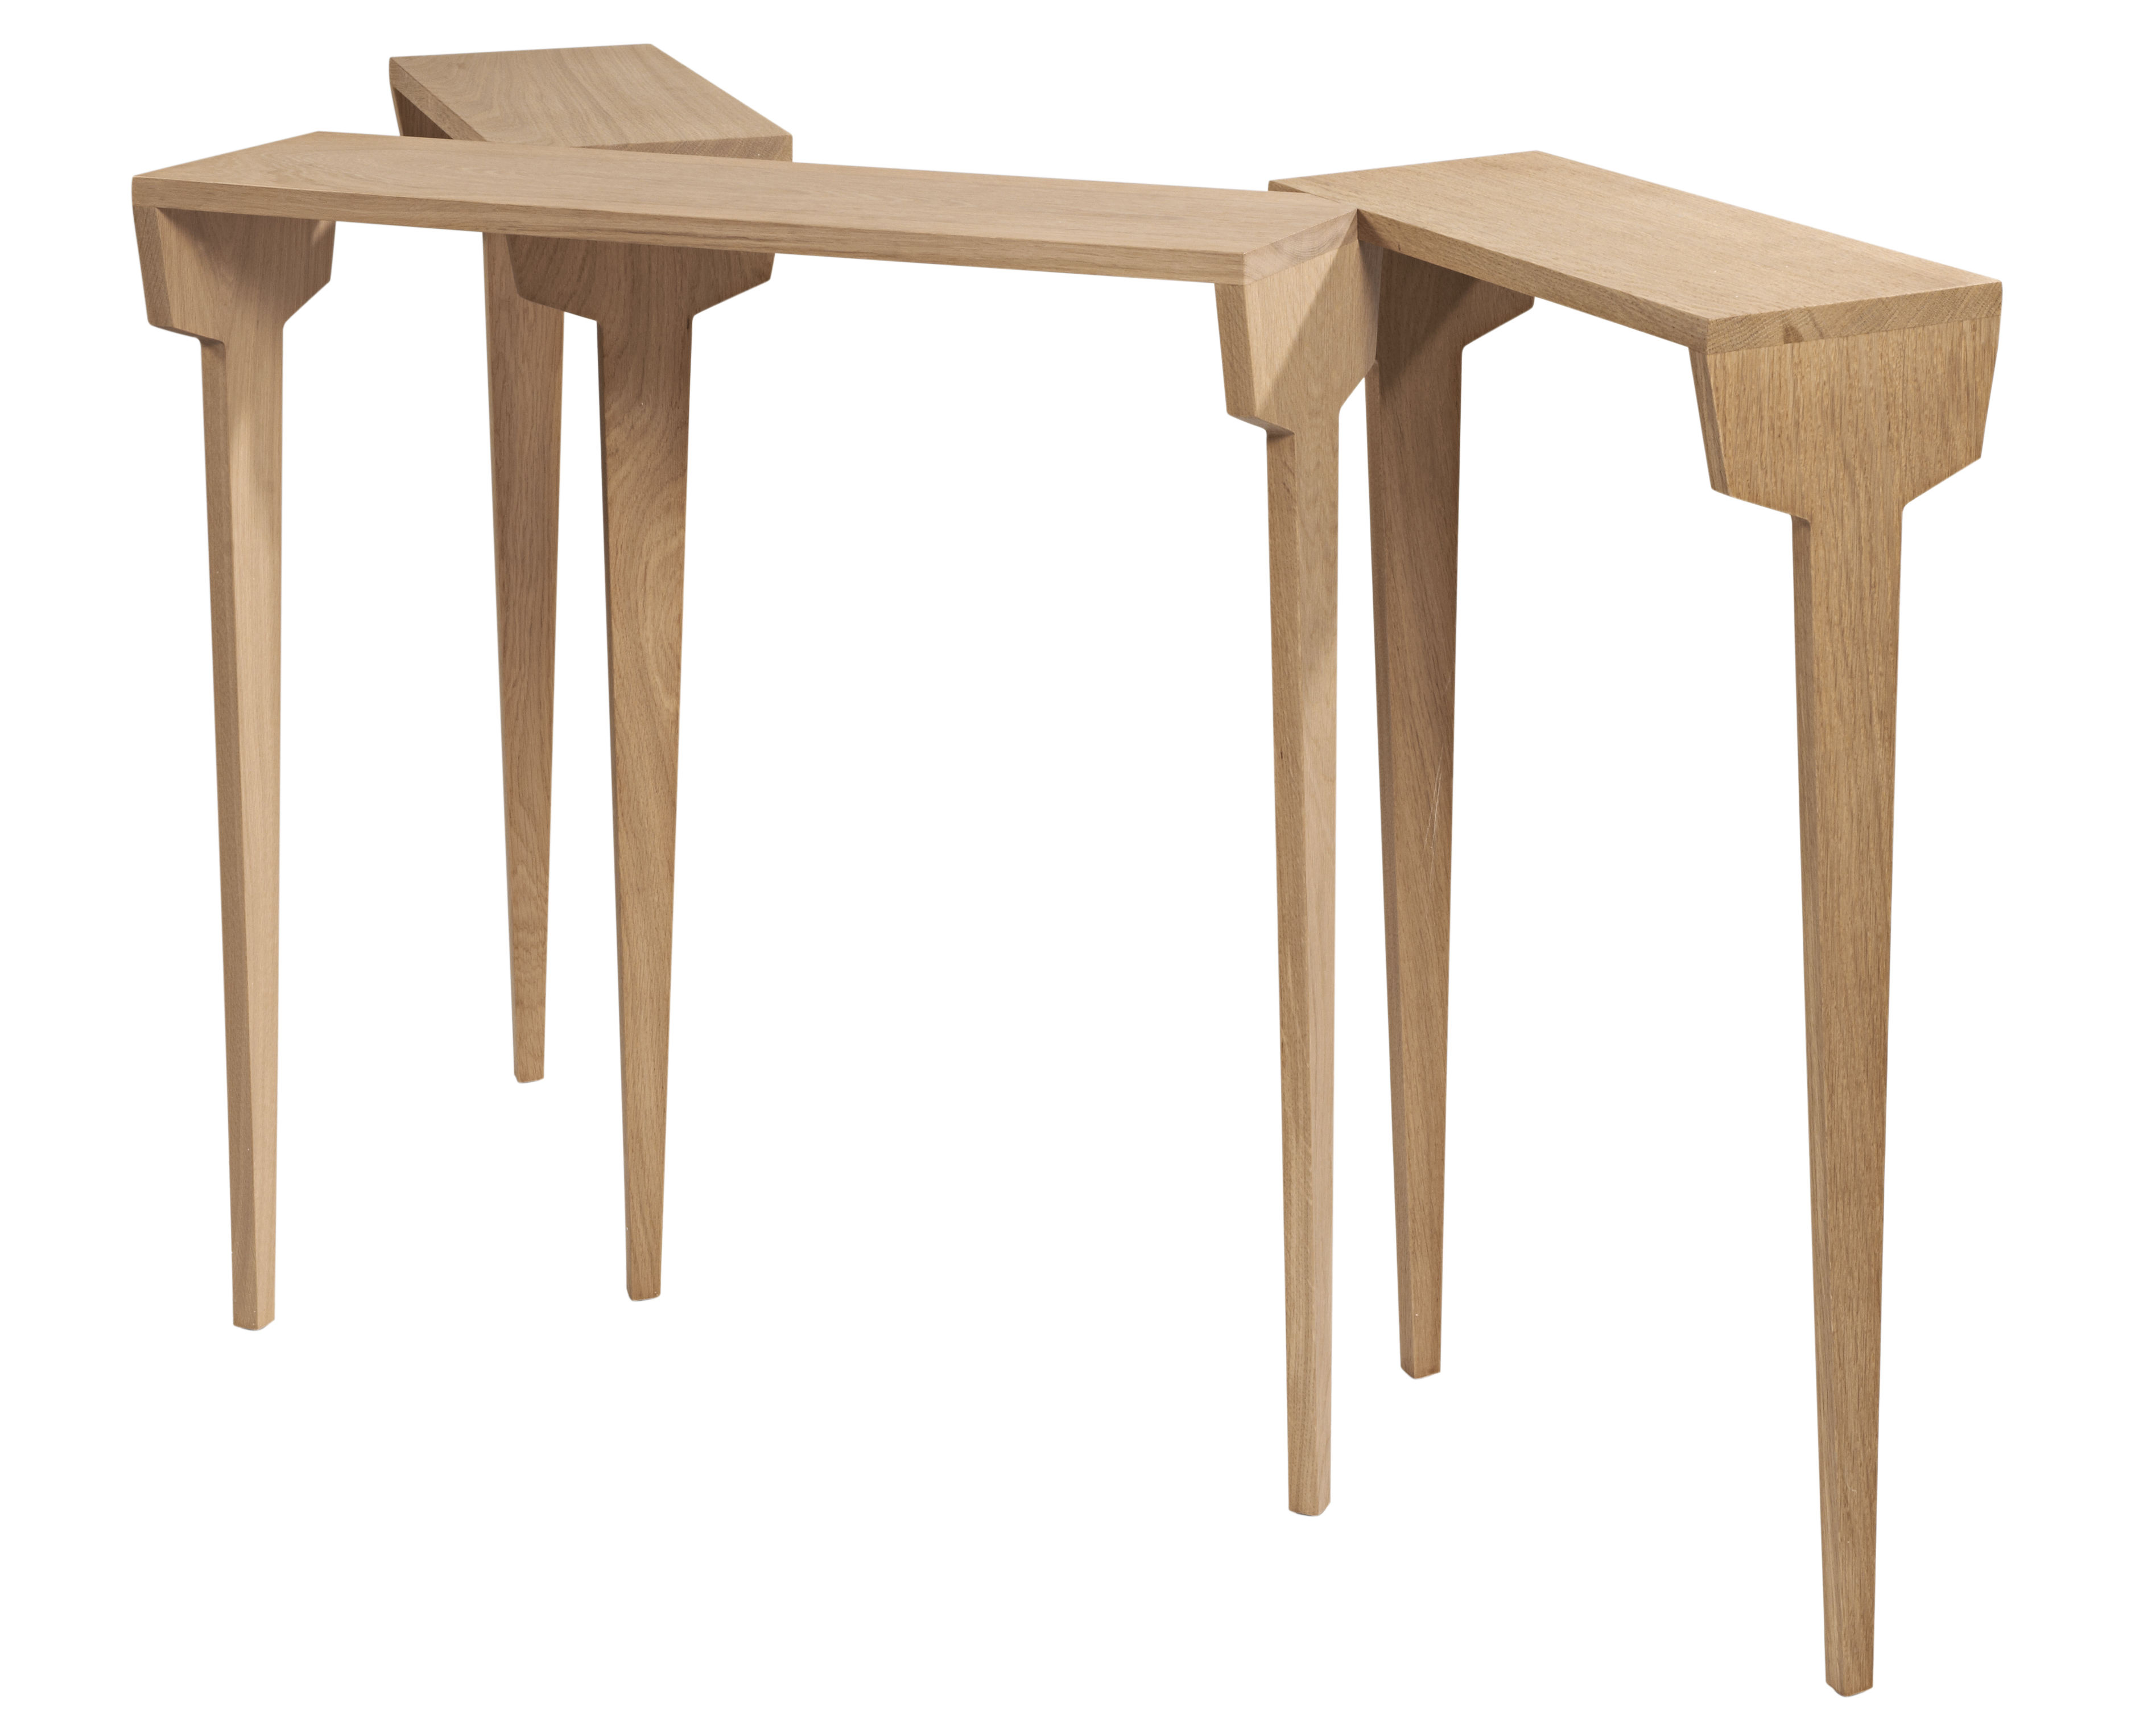 Mobilier - Consoles - Console Clou L 140 cm - Made in design Editions - Chêne massif - Chêne massif